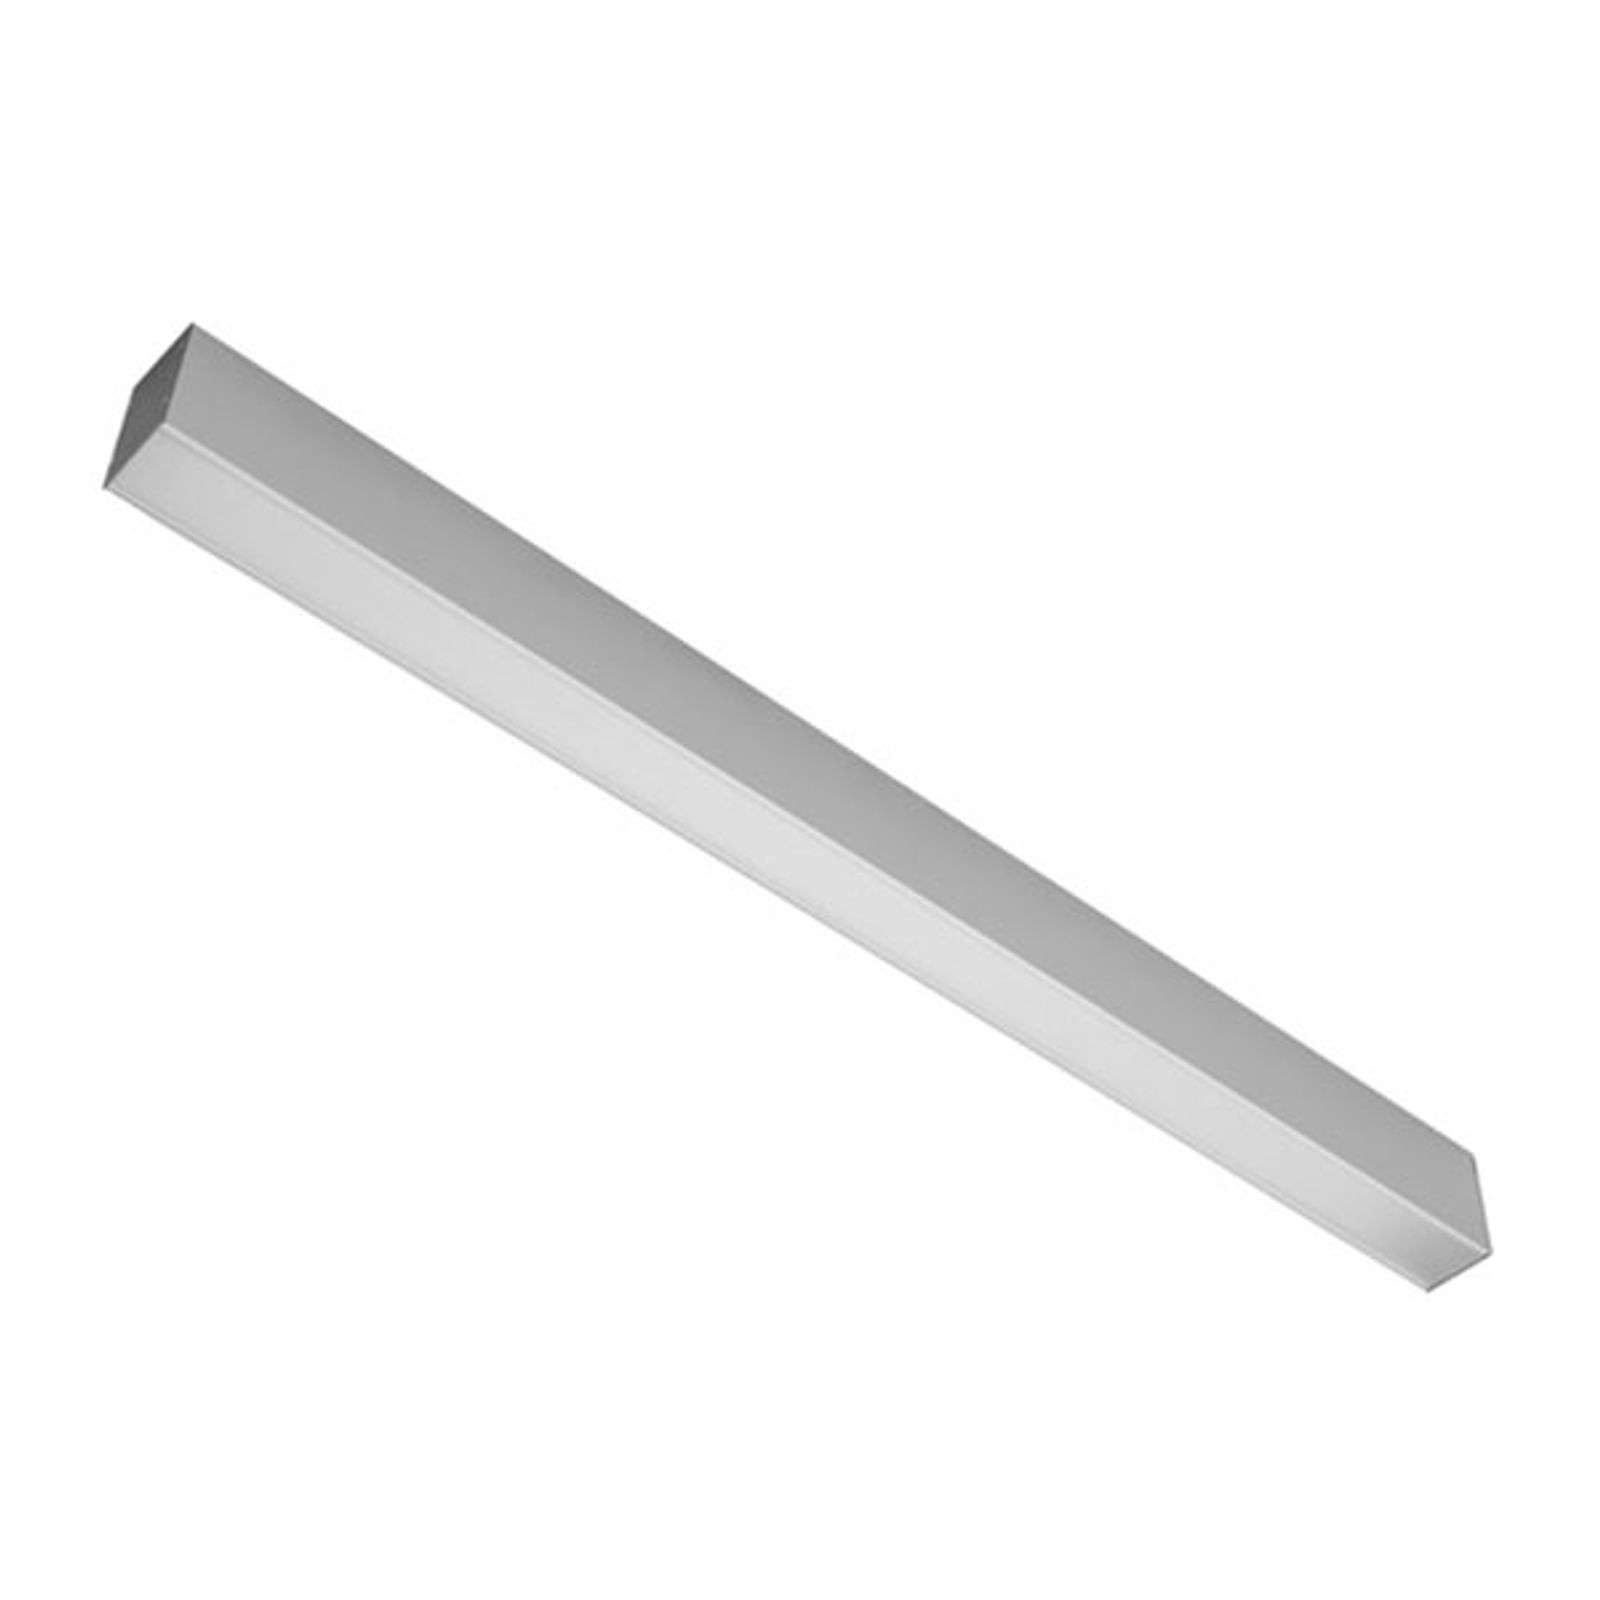 Applique LED aluminium 4 000 K 34 W